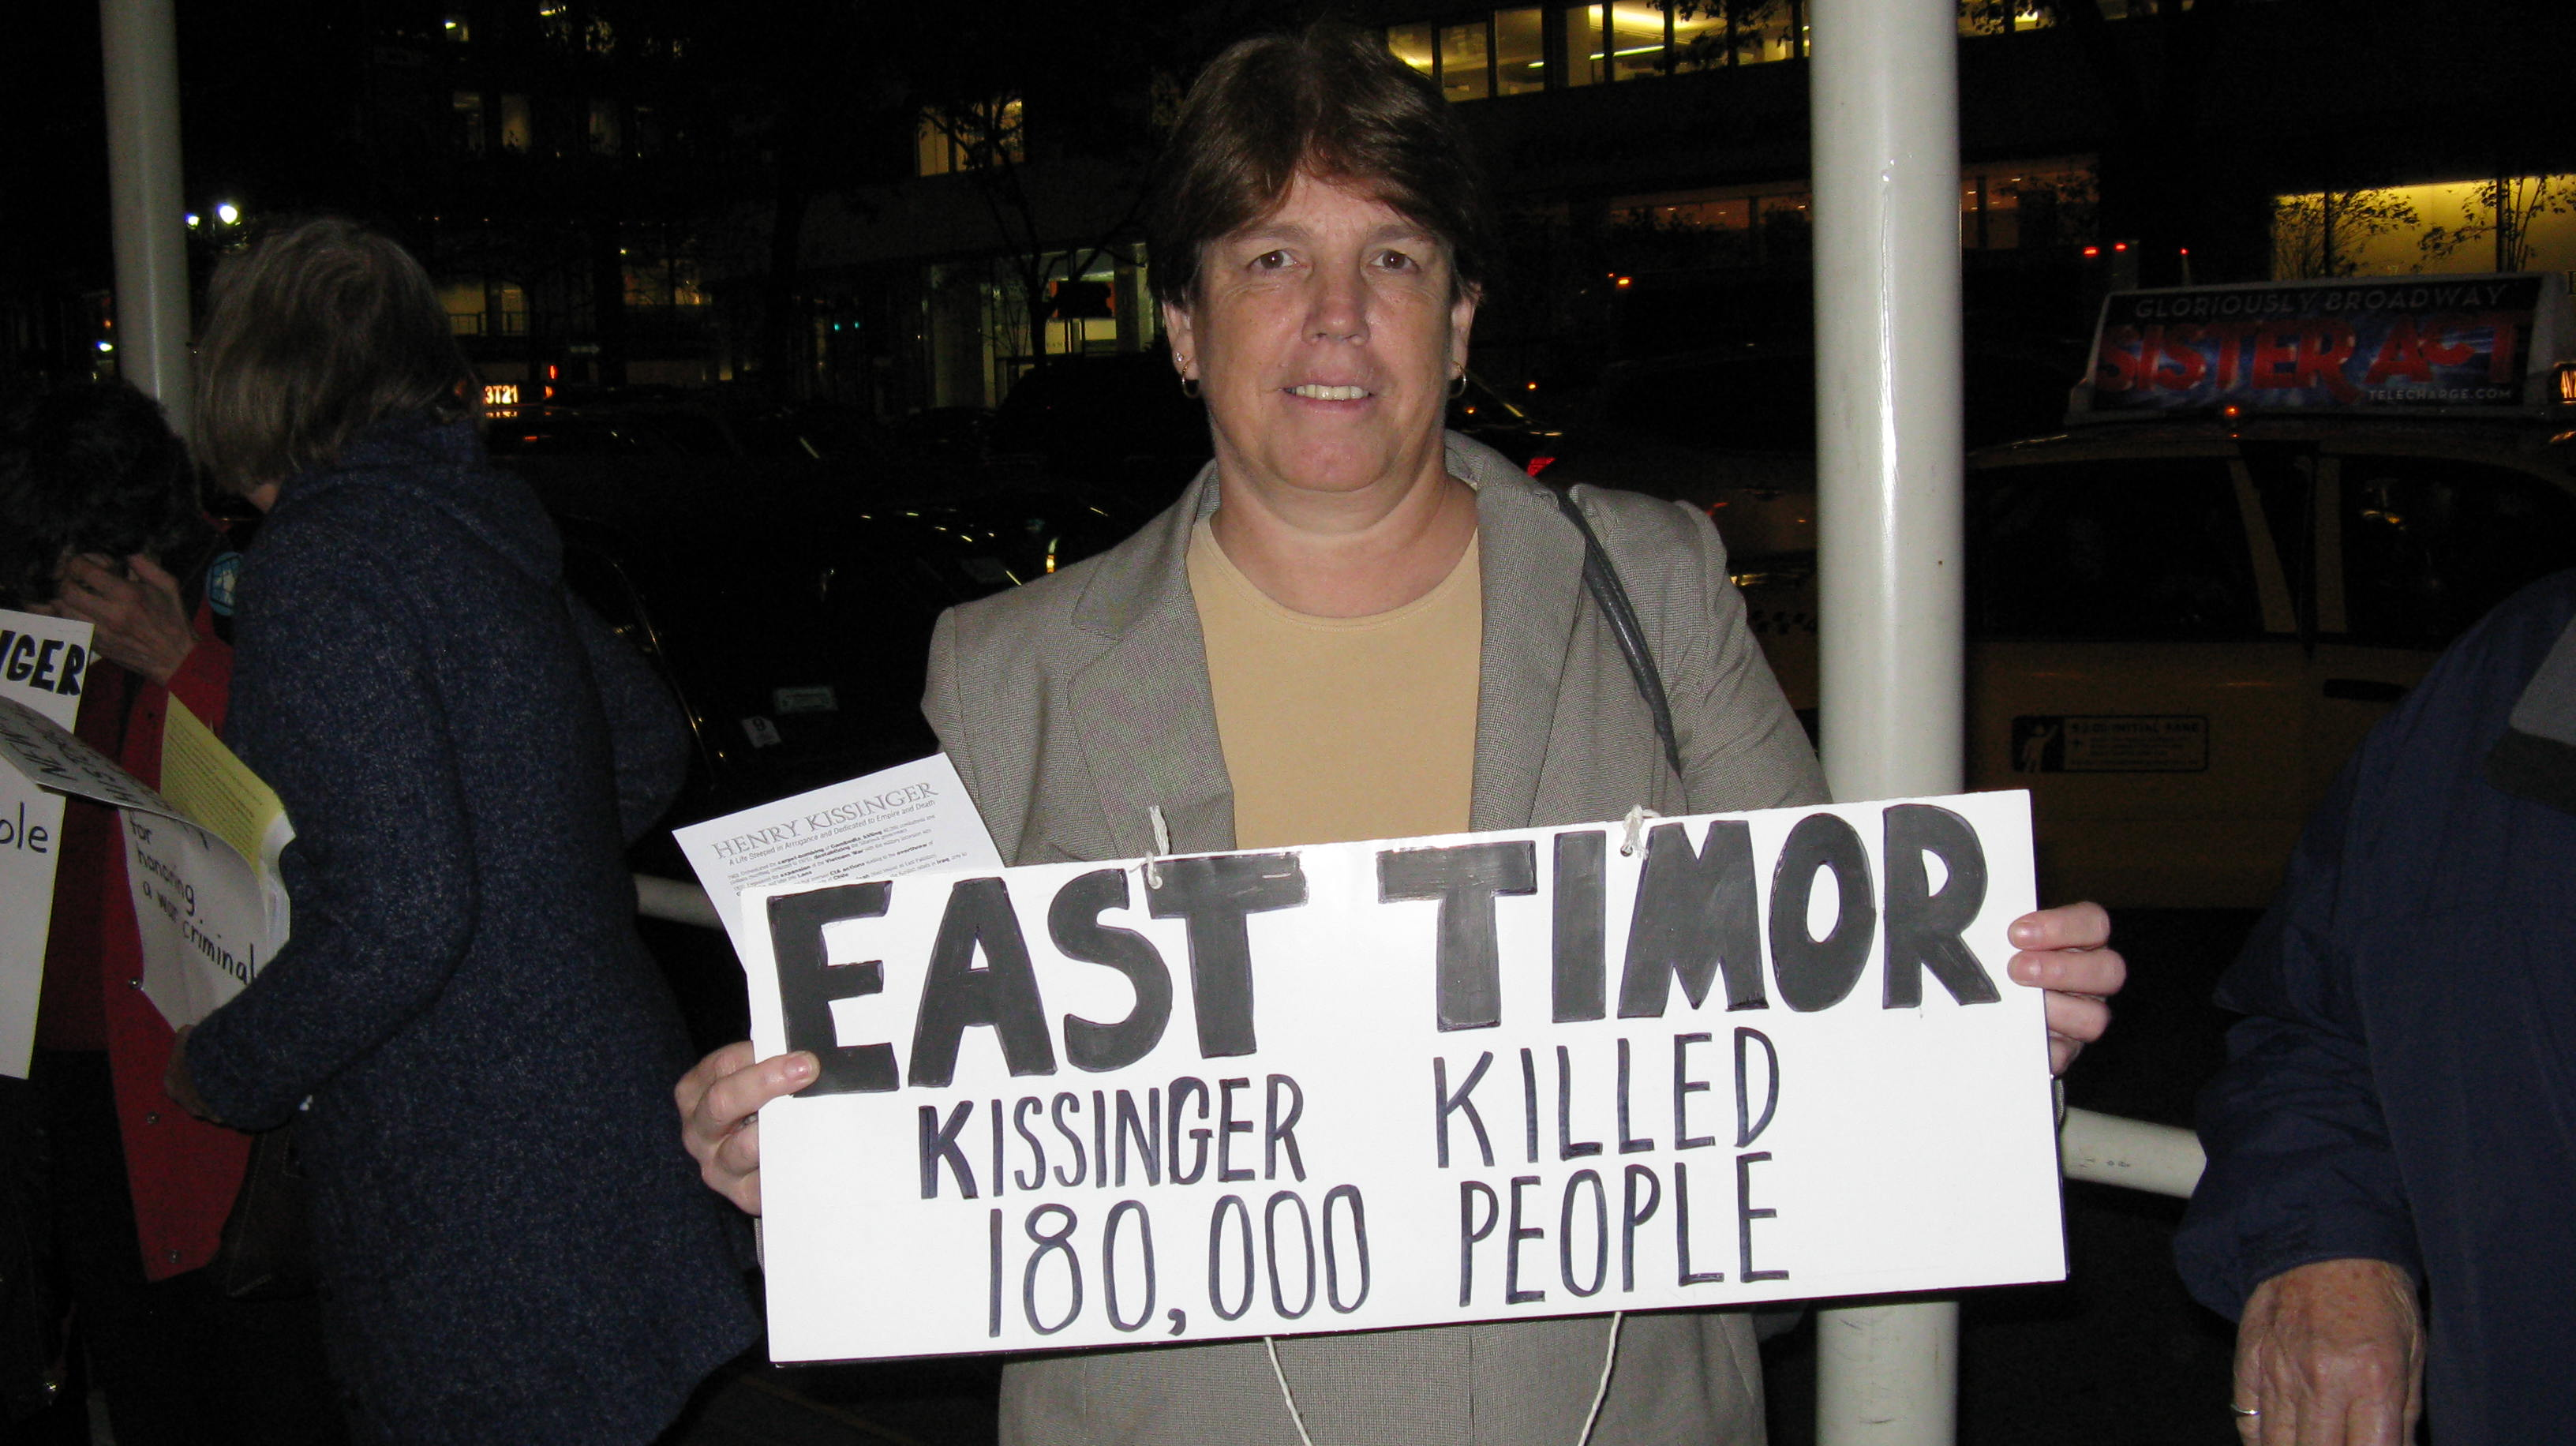 East Timor: Kissinger Killed 180,000 People